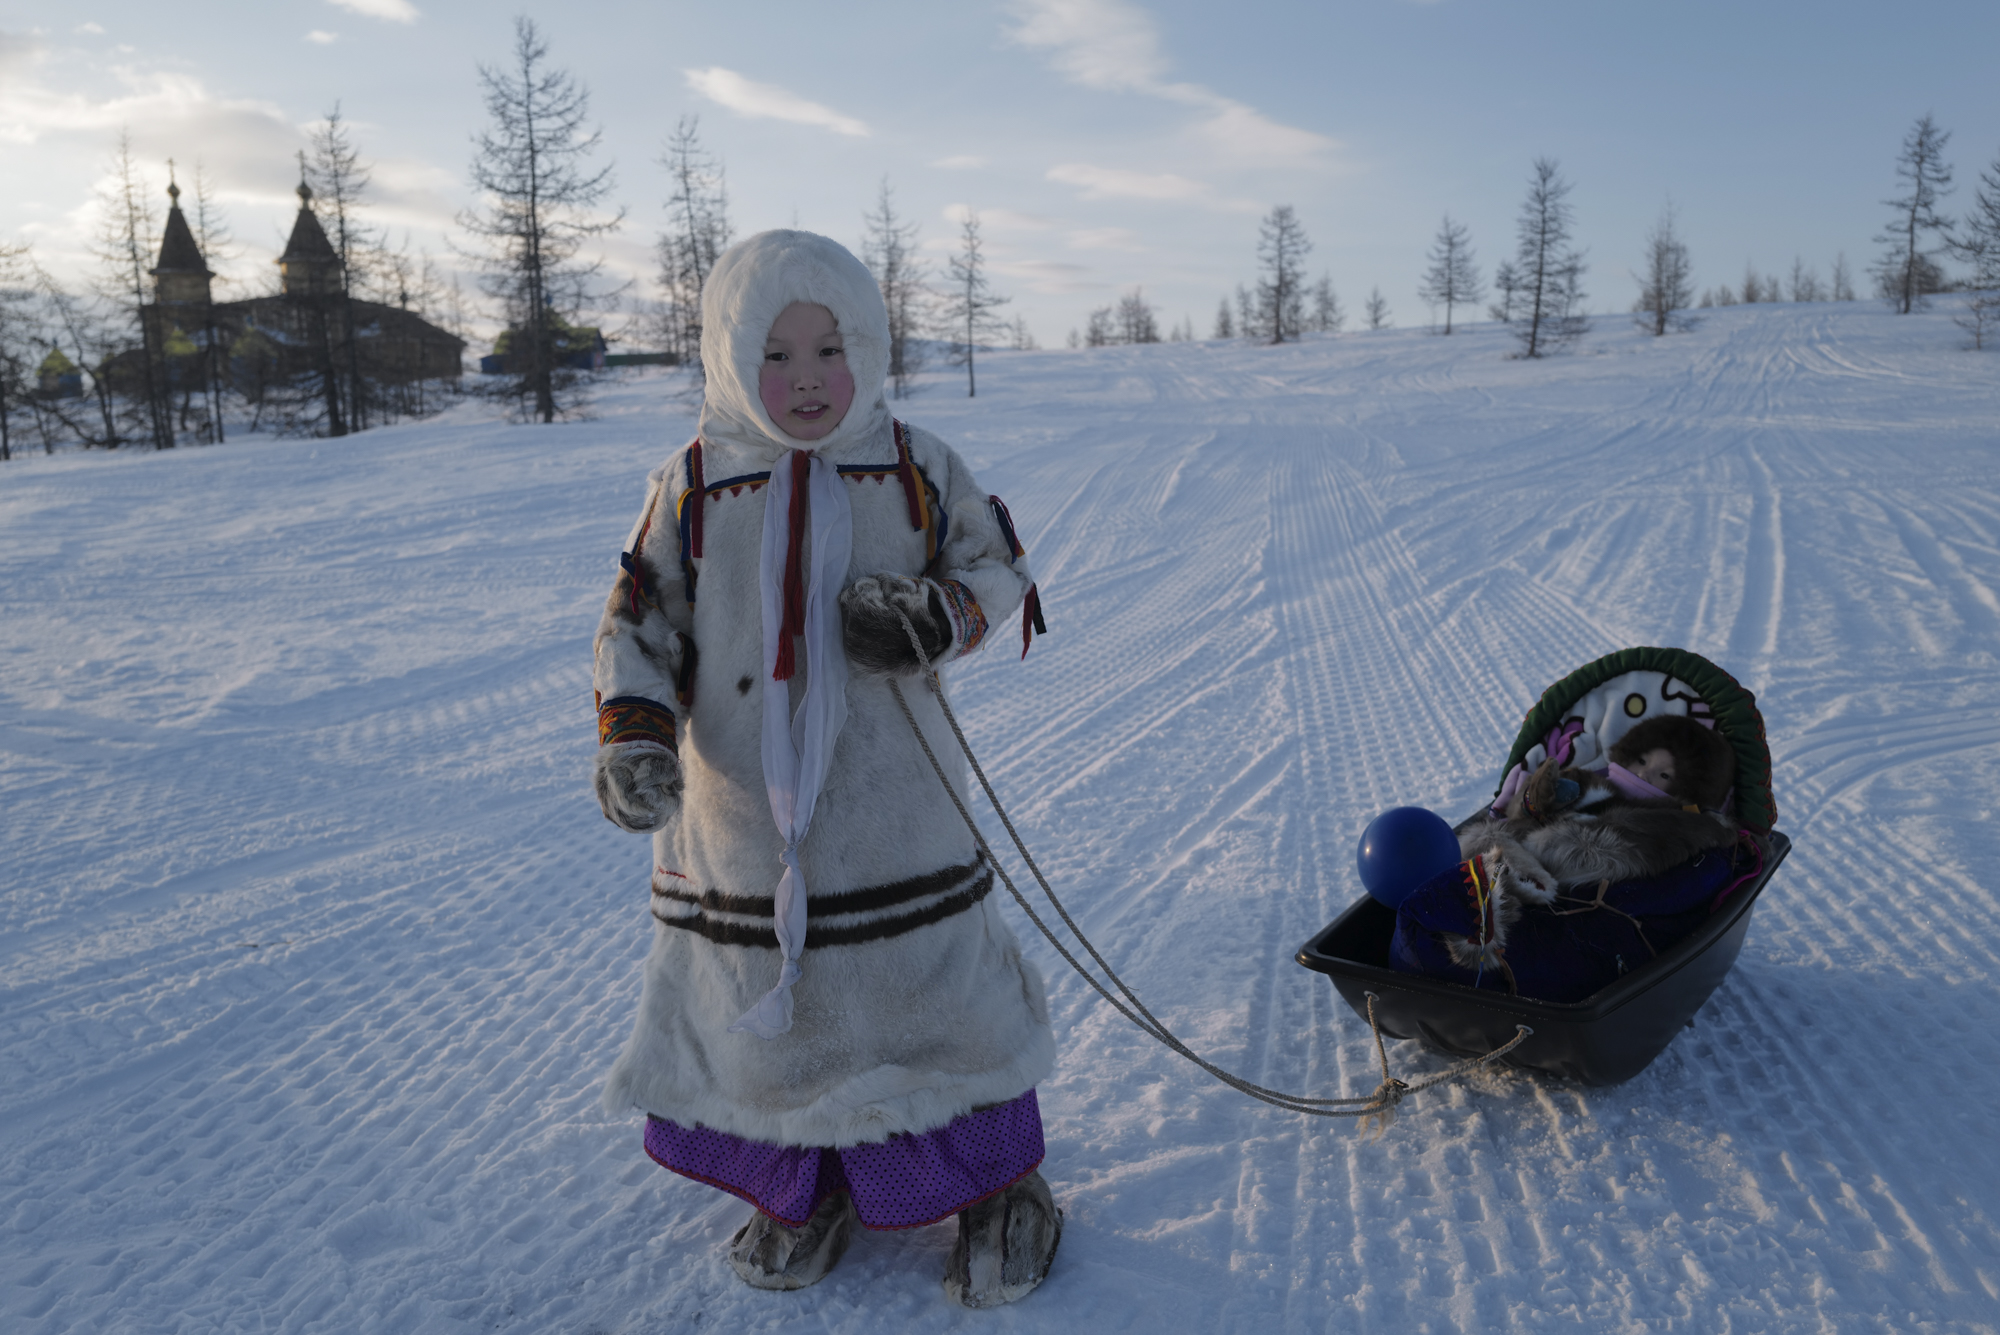 A Nenets schoolgirl pulling her baby sister in a sled-like pram. Photographed with Leica Q2, Siberia, 2019.  ©  Rosalynn Tay.